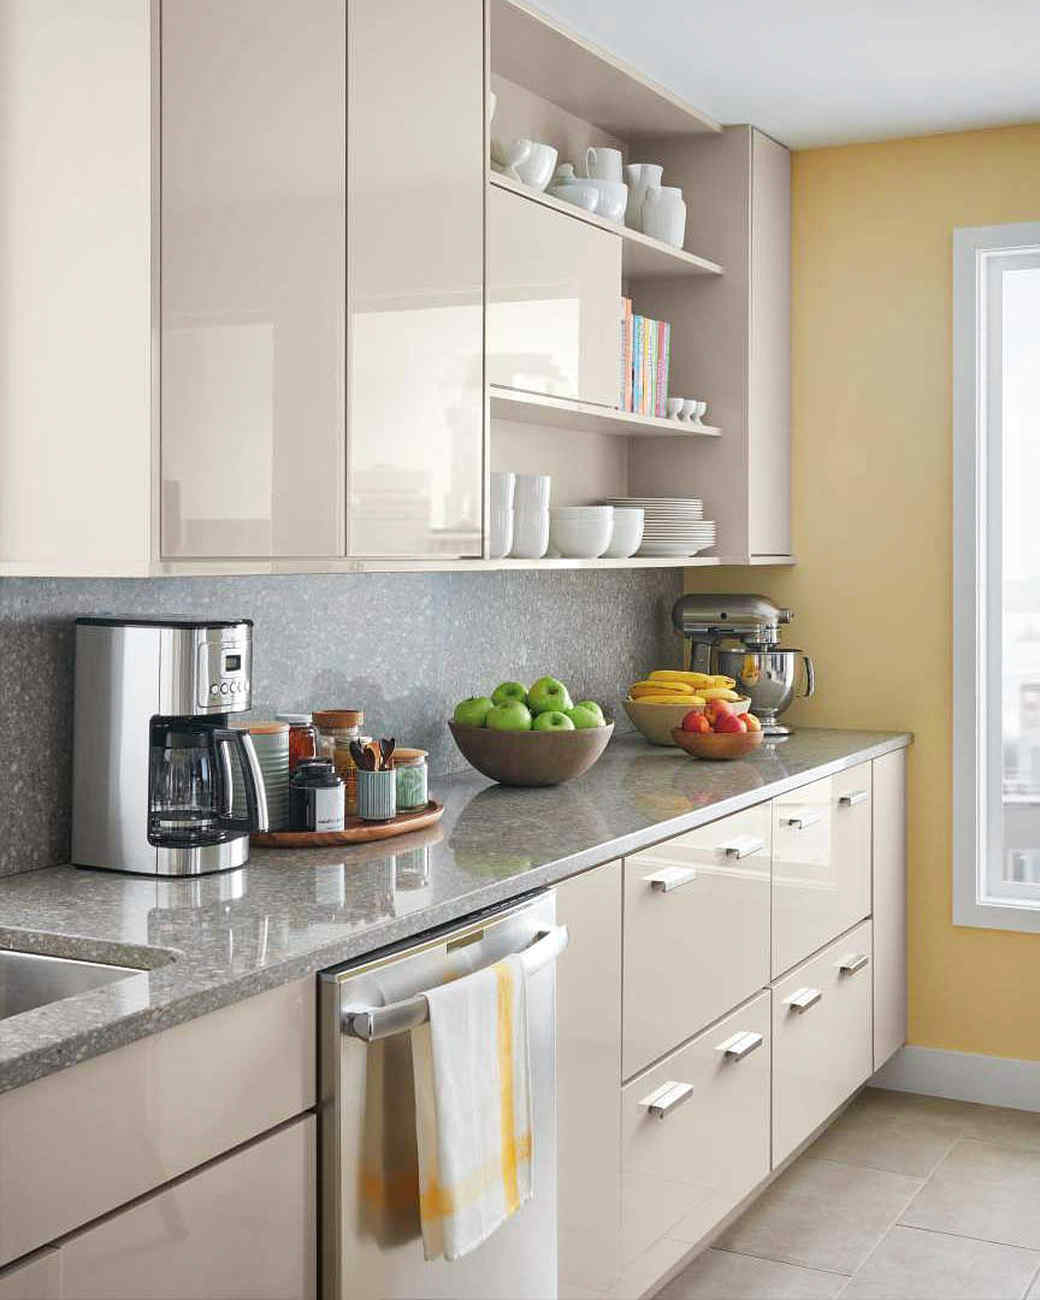 Kitchens Styles And Designs Home Decoration Interior Decorating